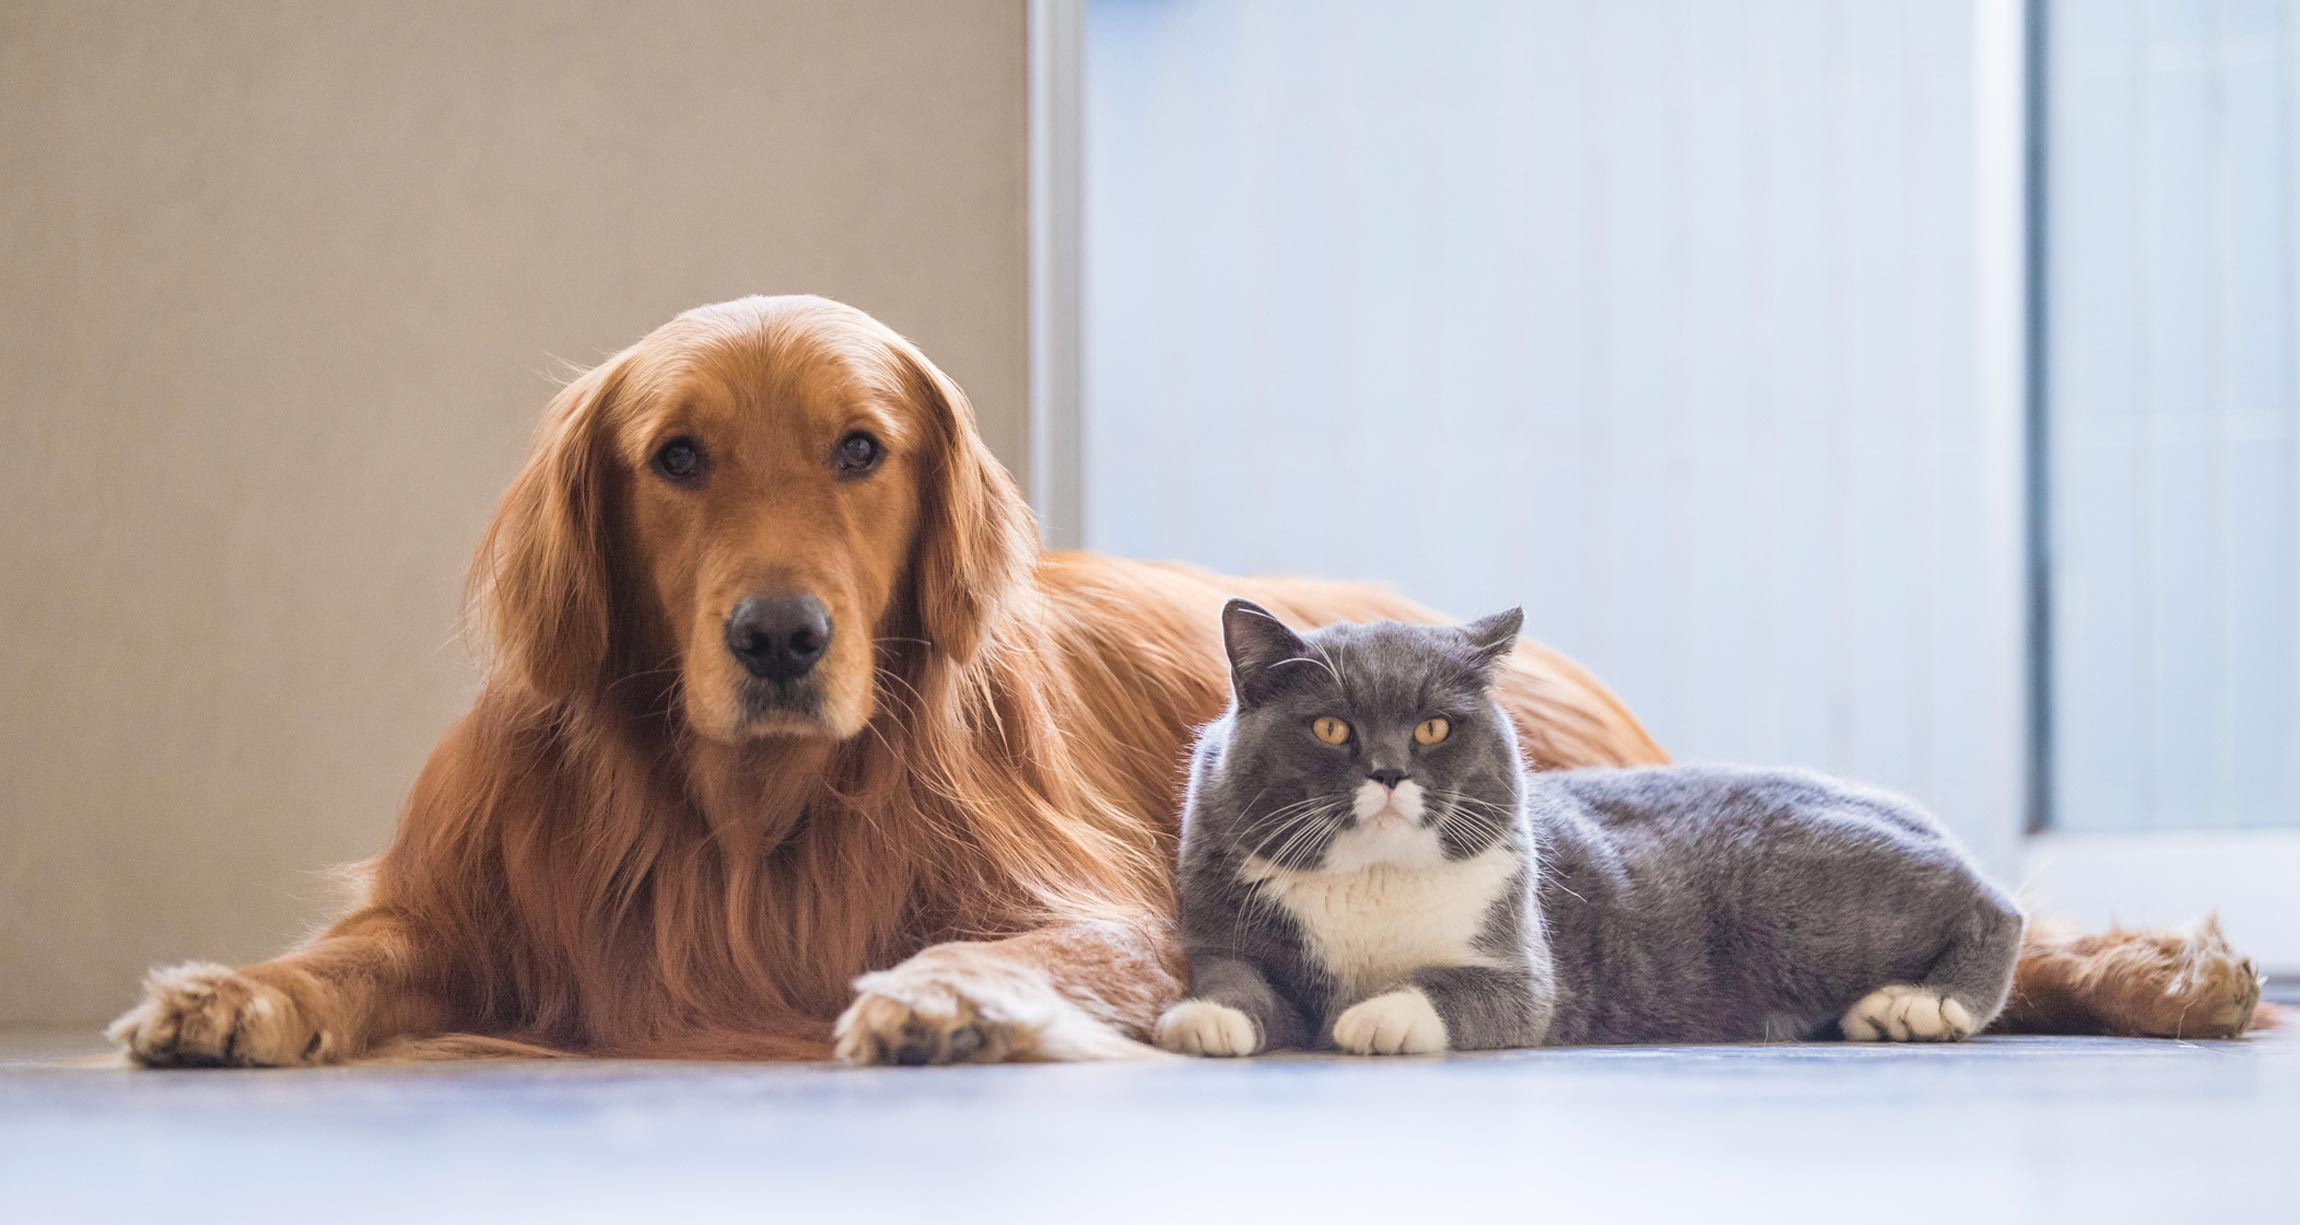 Is It Wrong to Have A Pet? What Should You Feed Dogs and Cats for Their Health and The Planet?